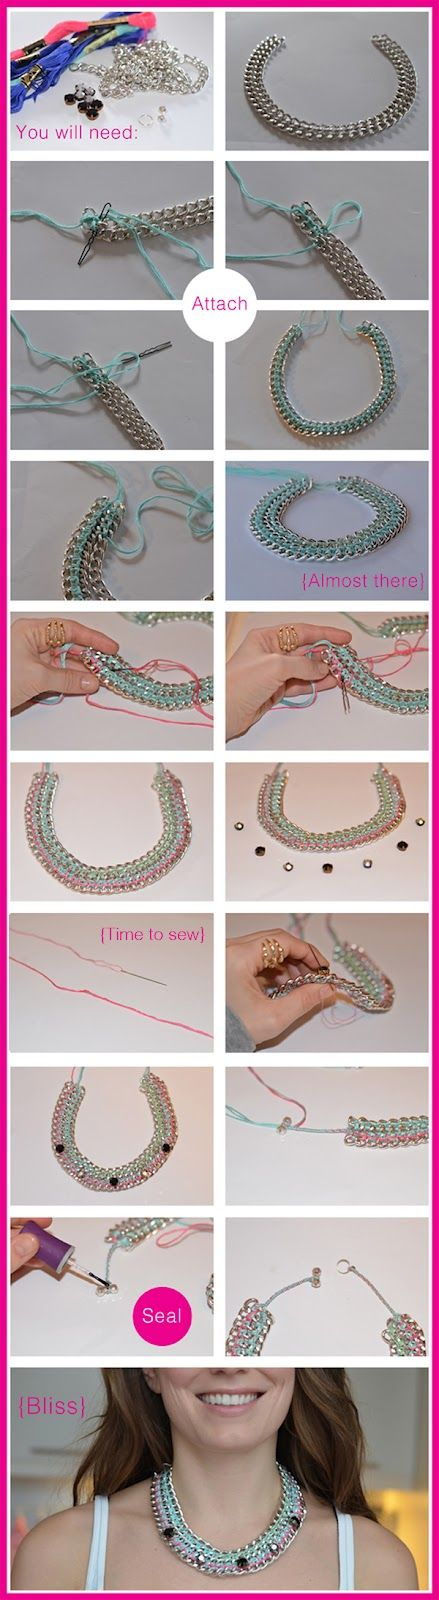 colorful chain necklace for spring